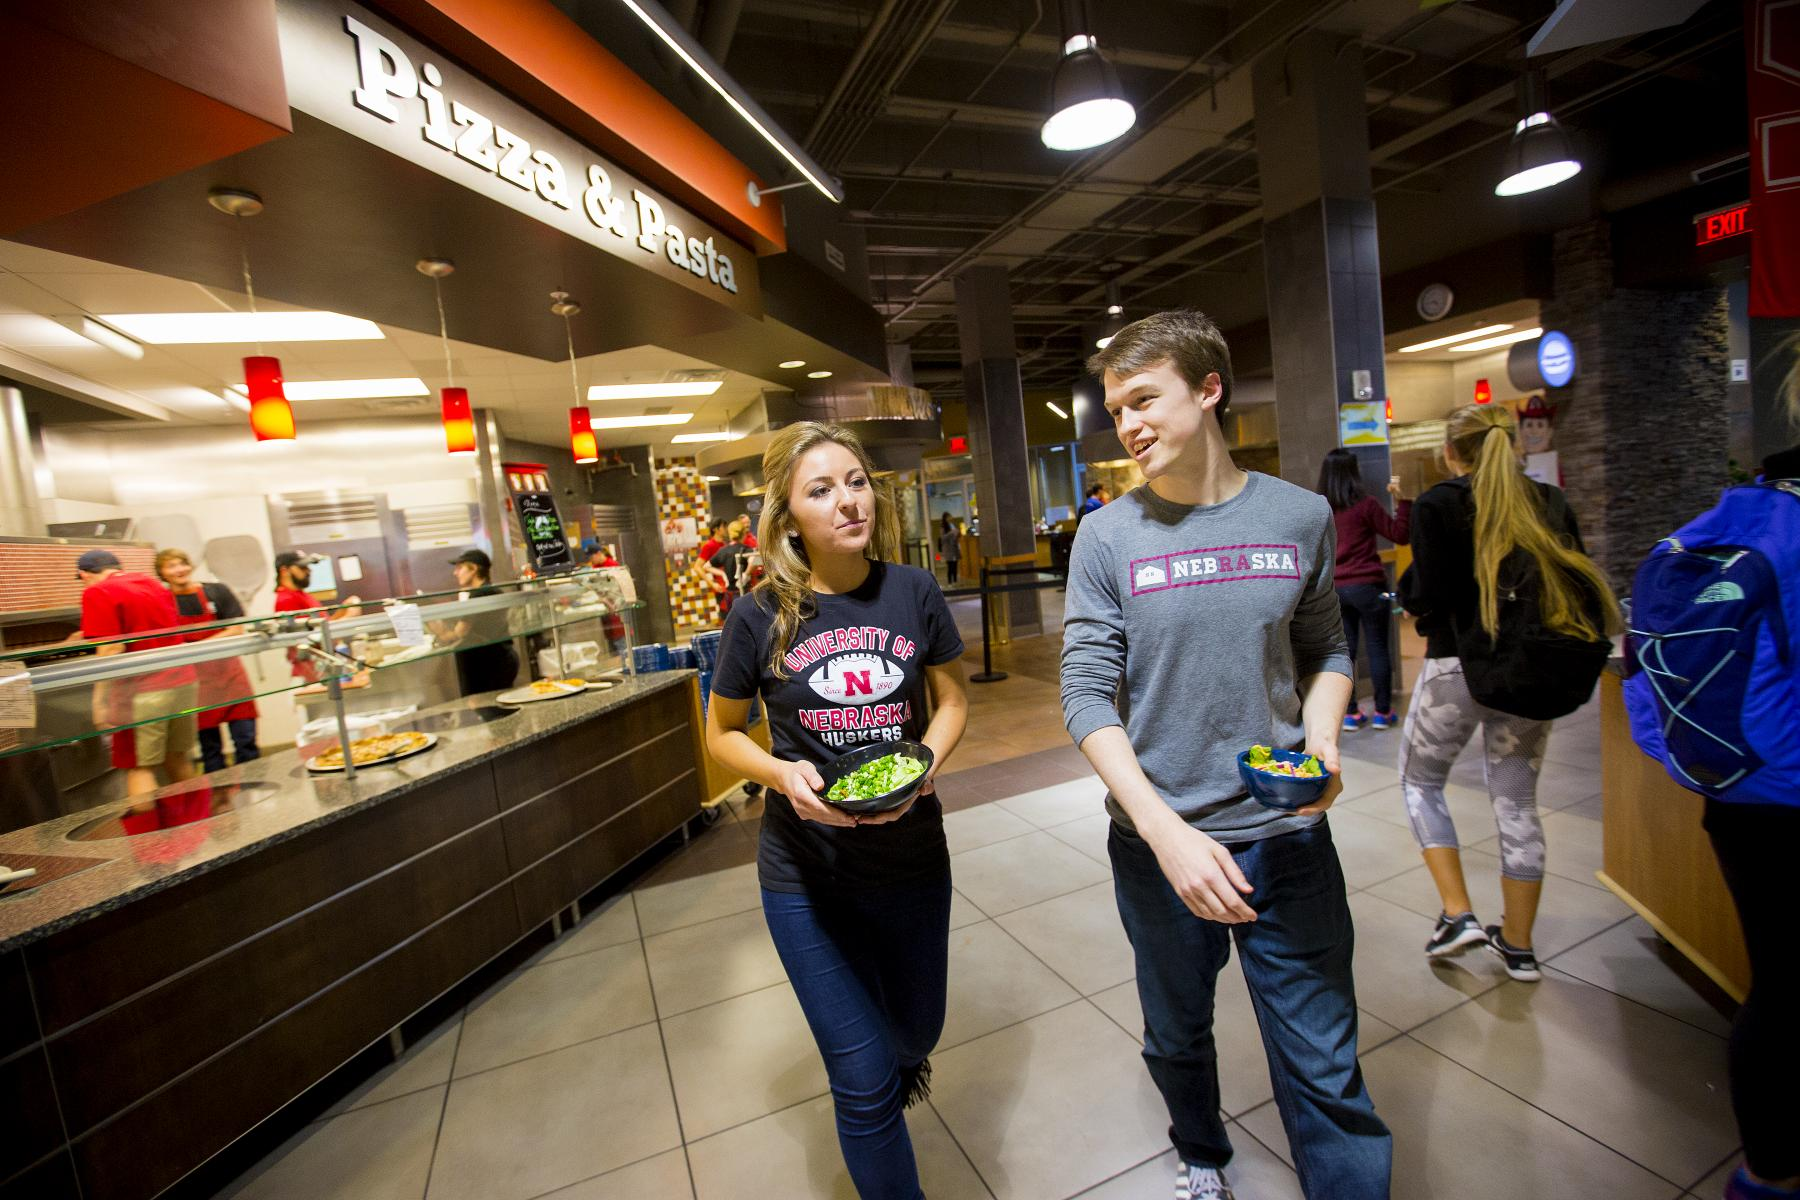 Students in the Abel/Sandoz dining center.